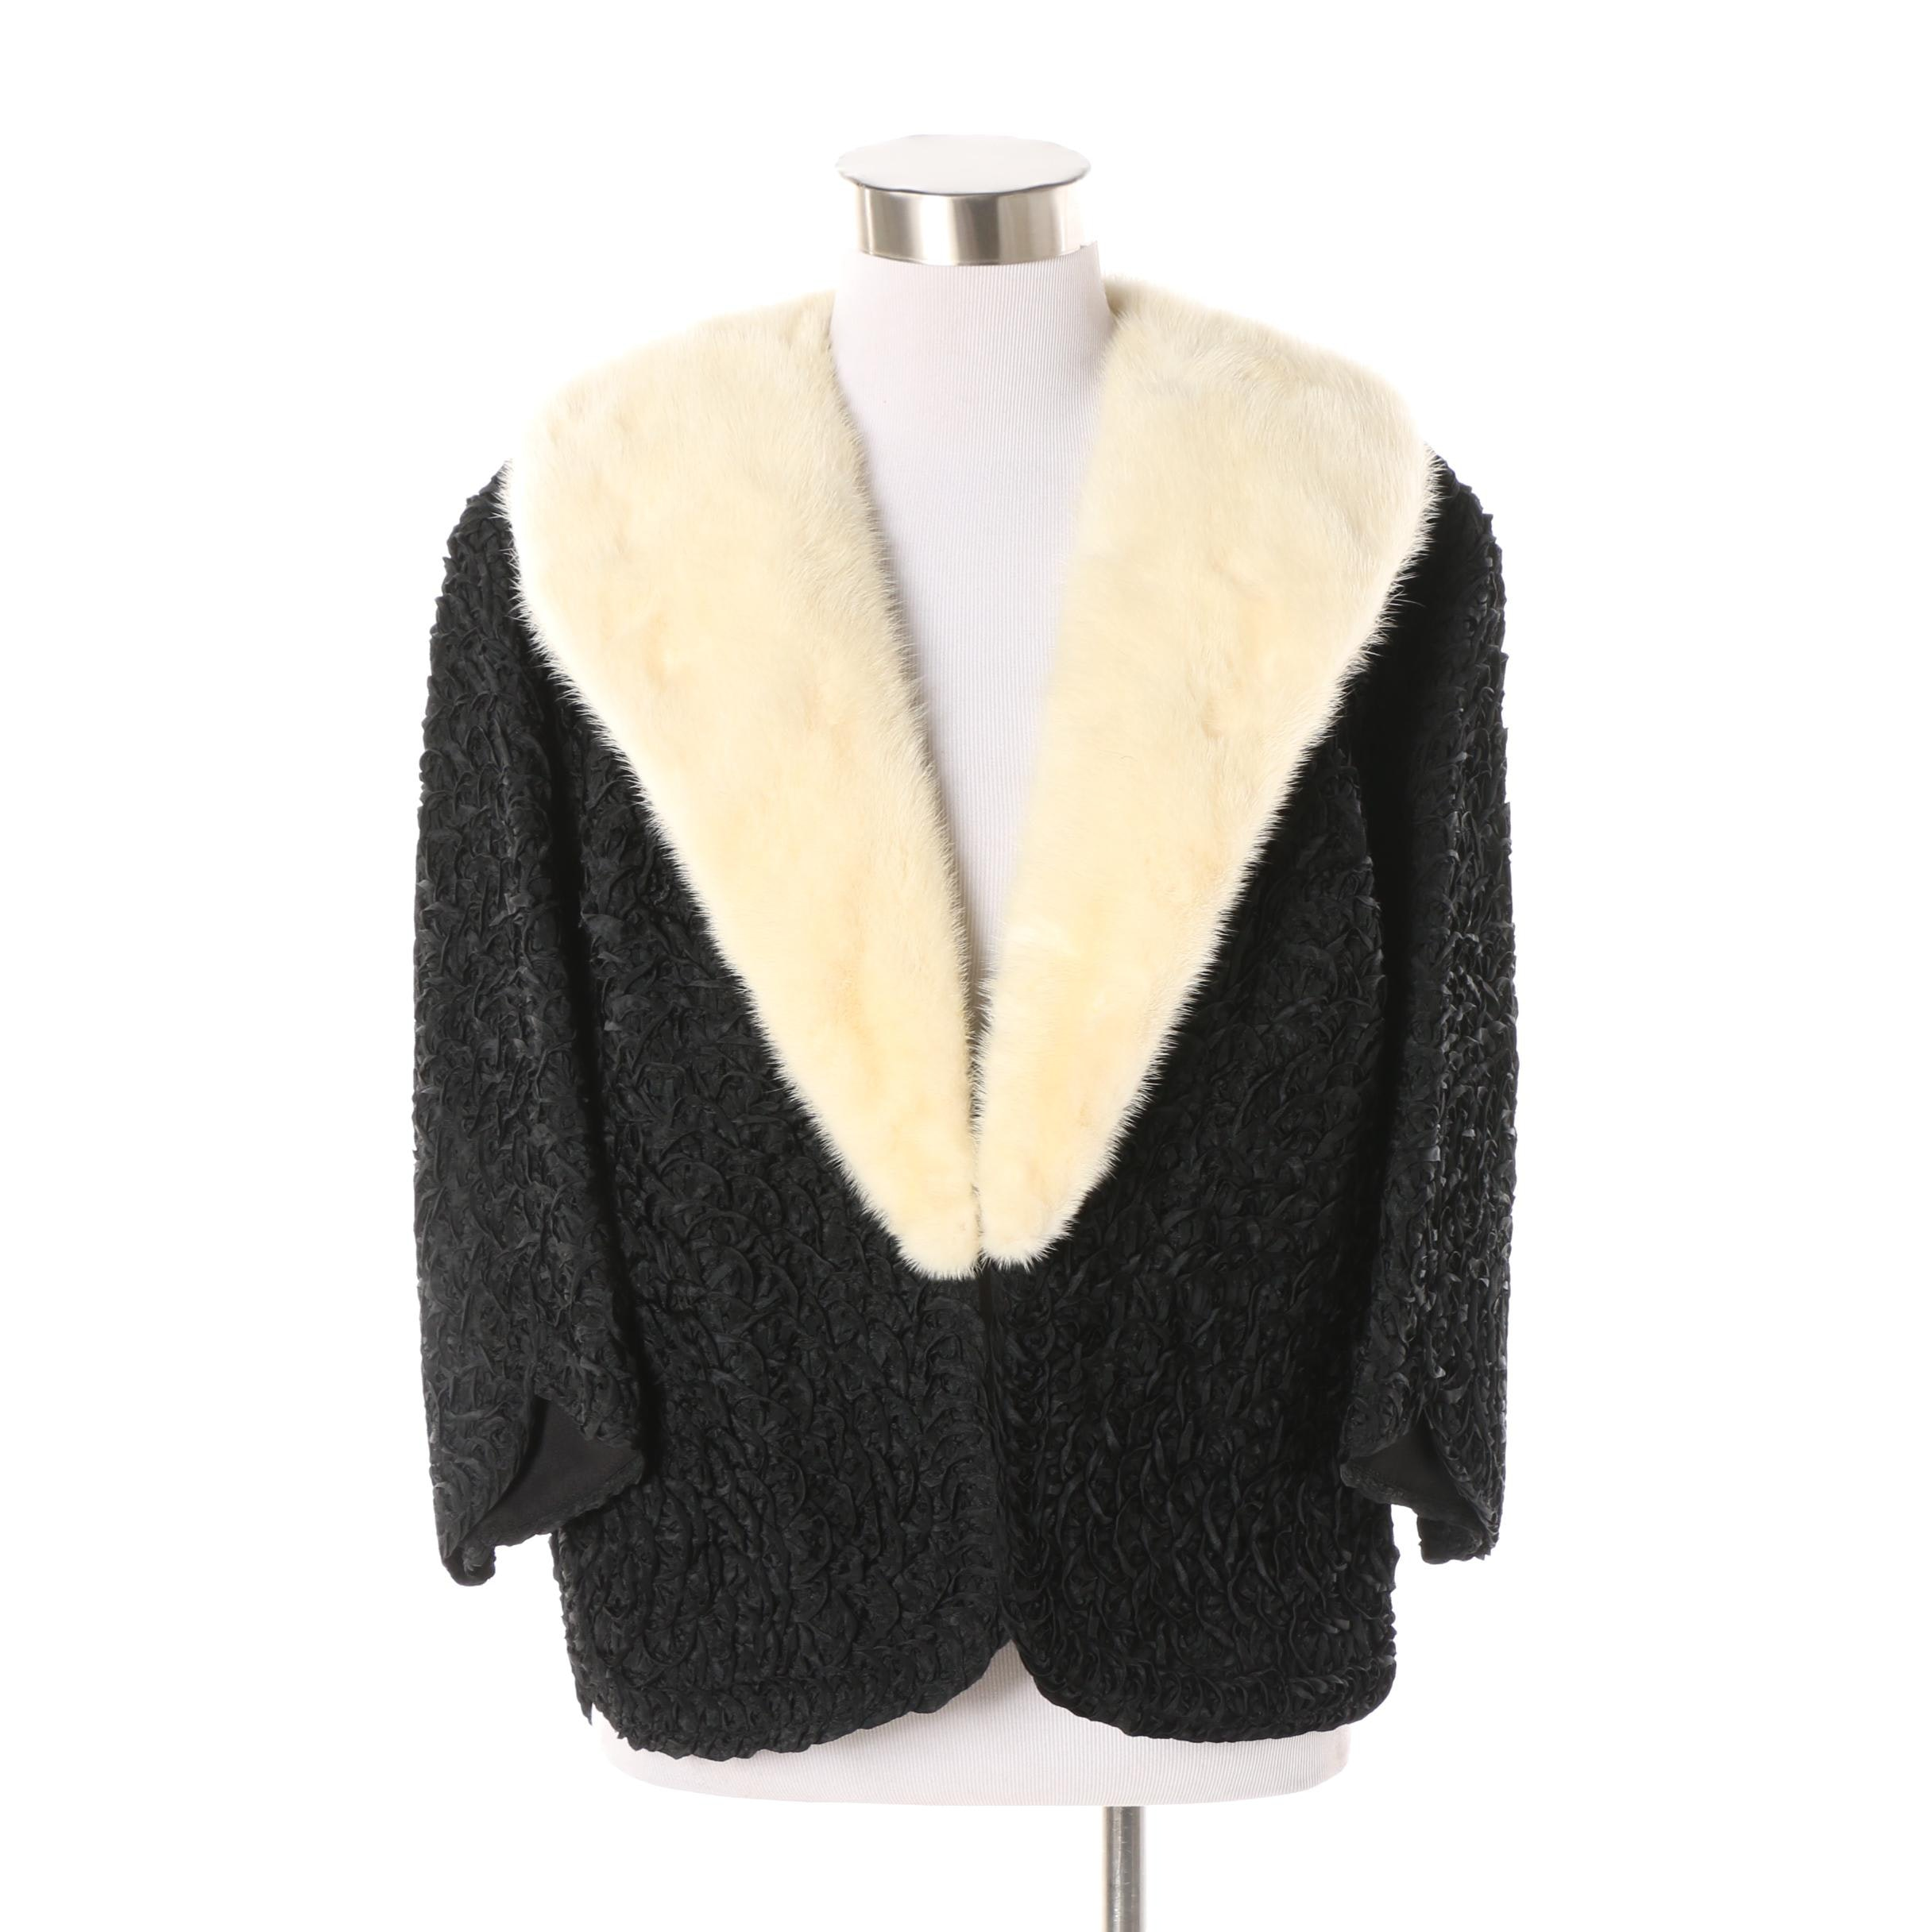 Vintage Jack Slade Furs Ribbonwork Black Jacket with Platinum Mink Fur Collar